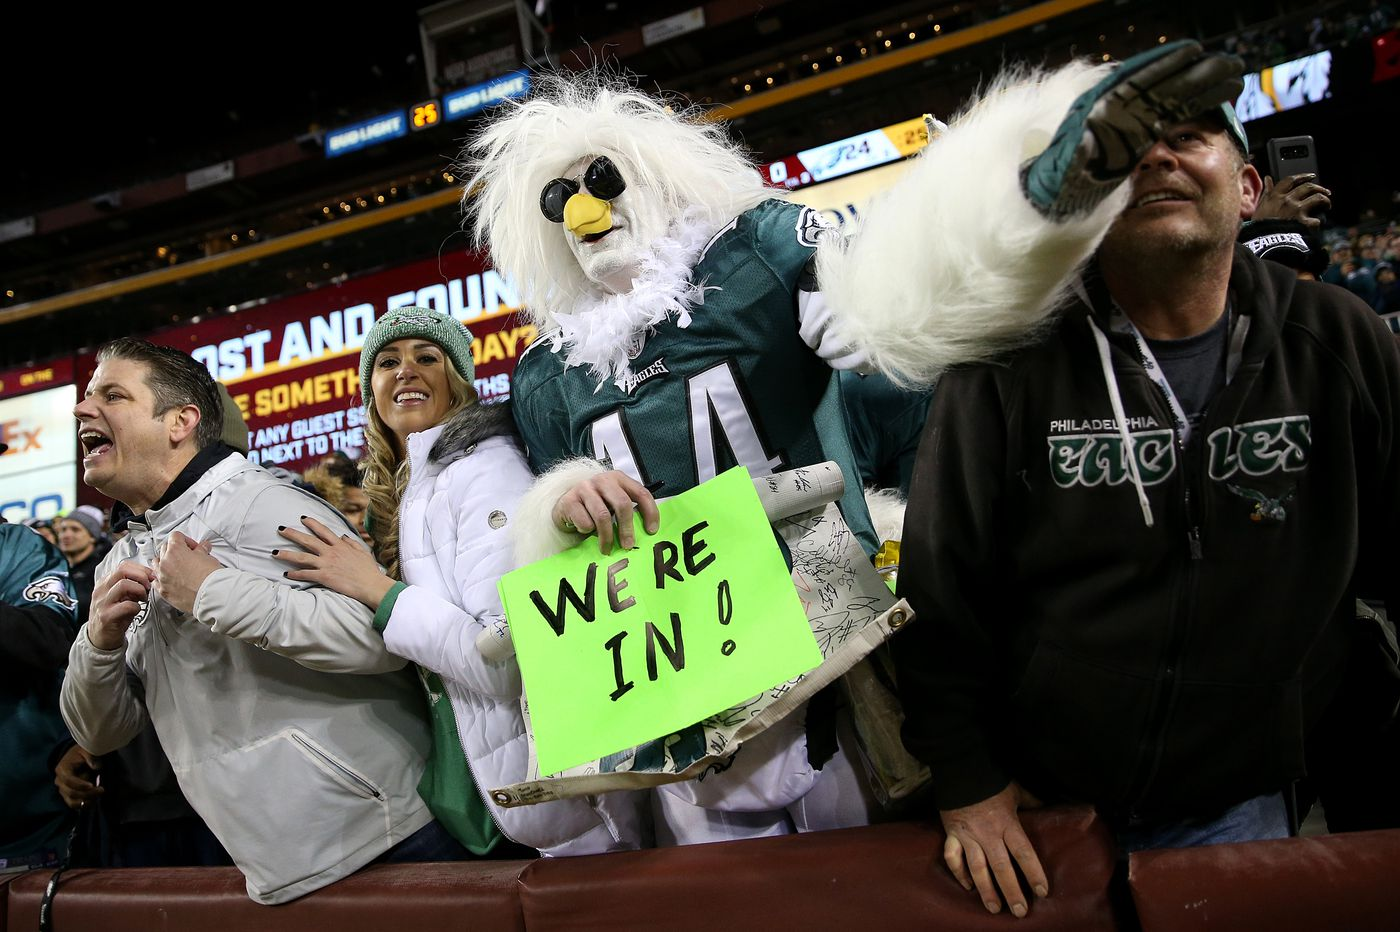 NFL playoff chase: Eagles sneak in, open as touchdown underdog to Chicago, KC top seed in AFC